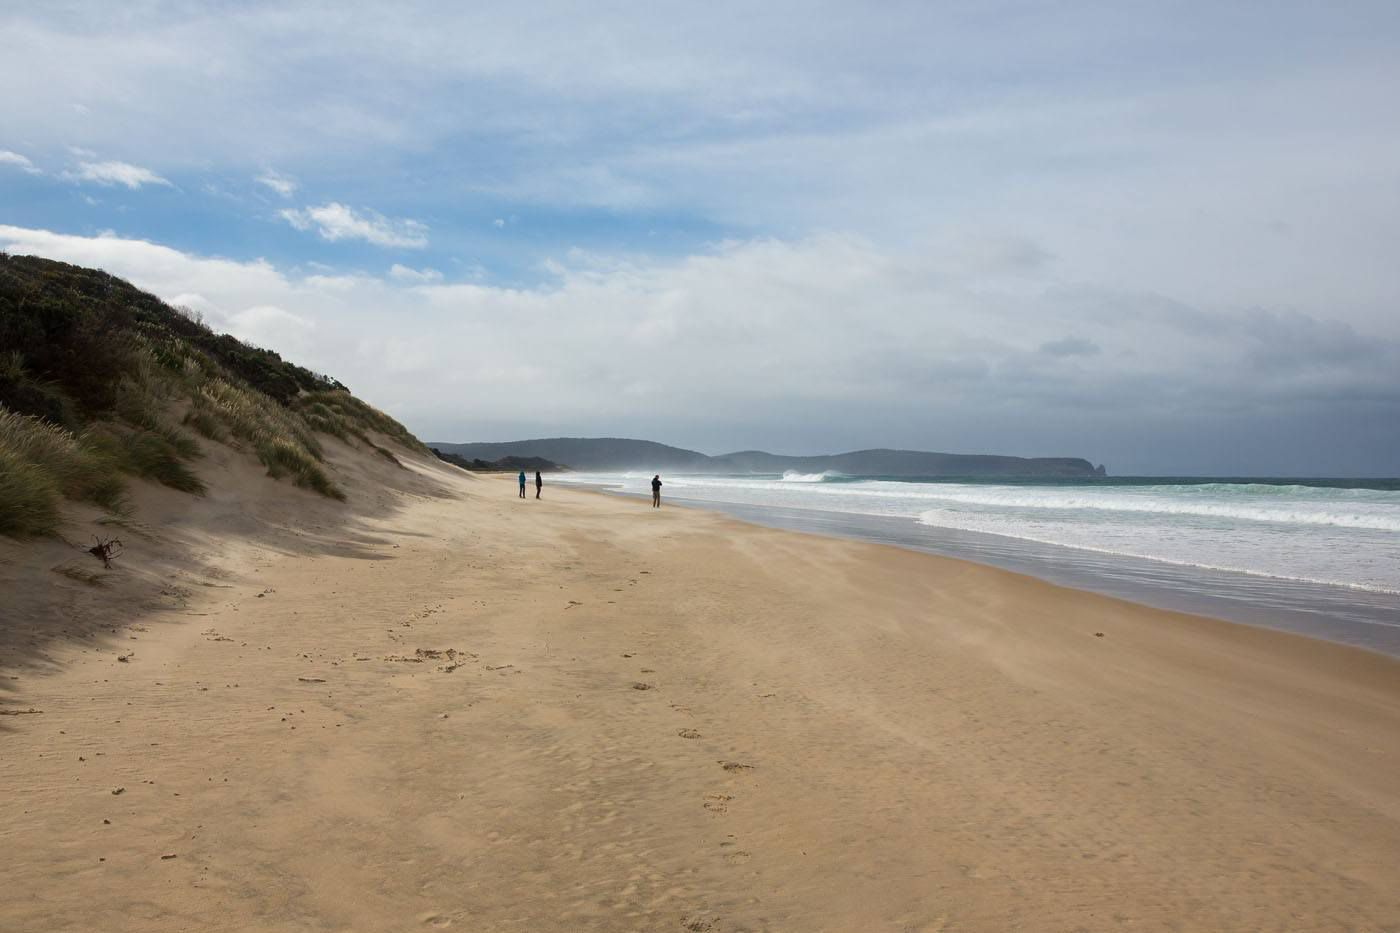 Bruny Beach